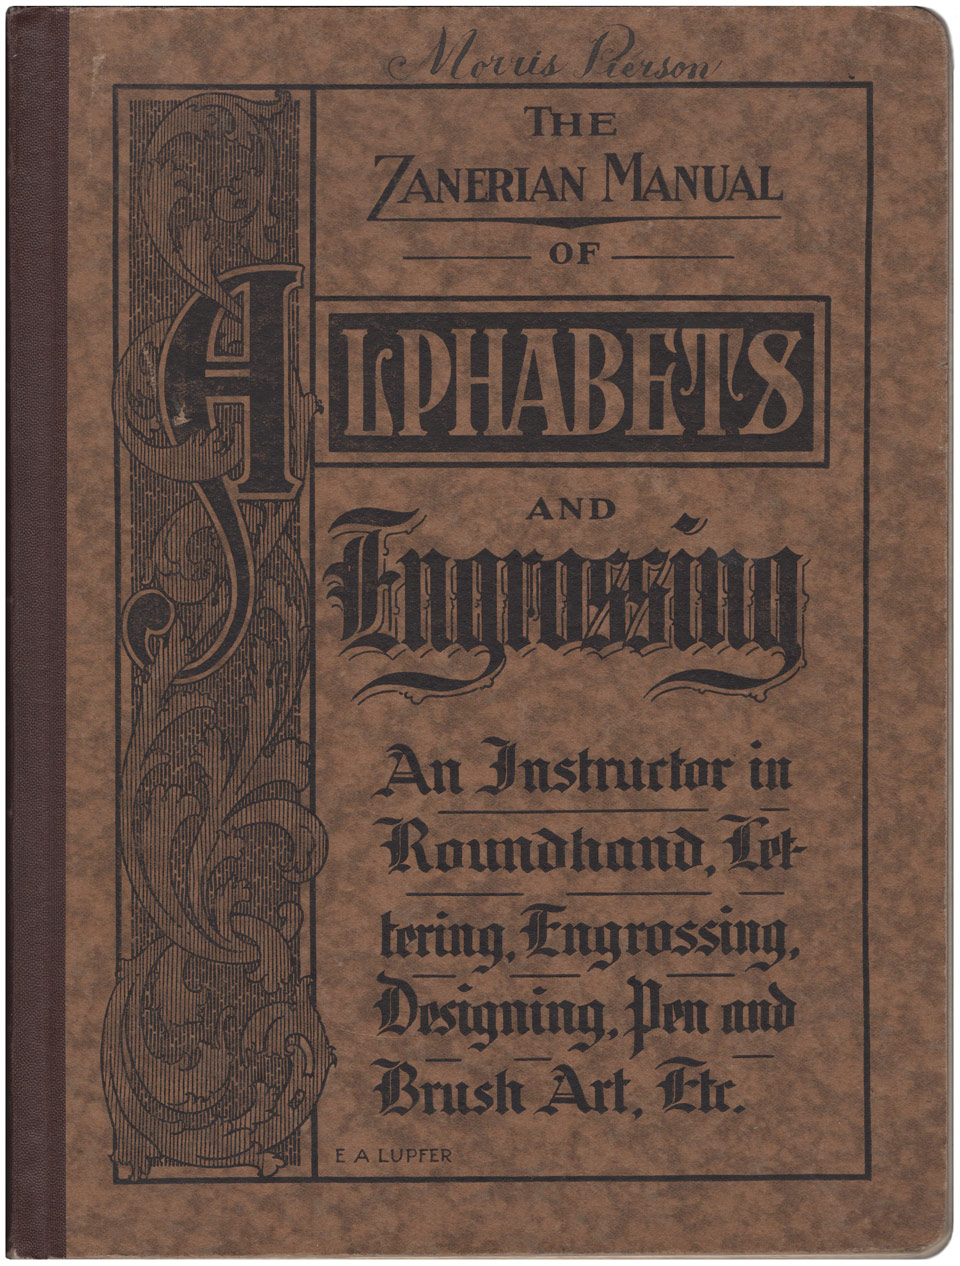 Masgrimes Zanerian Manual